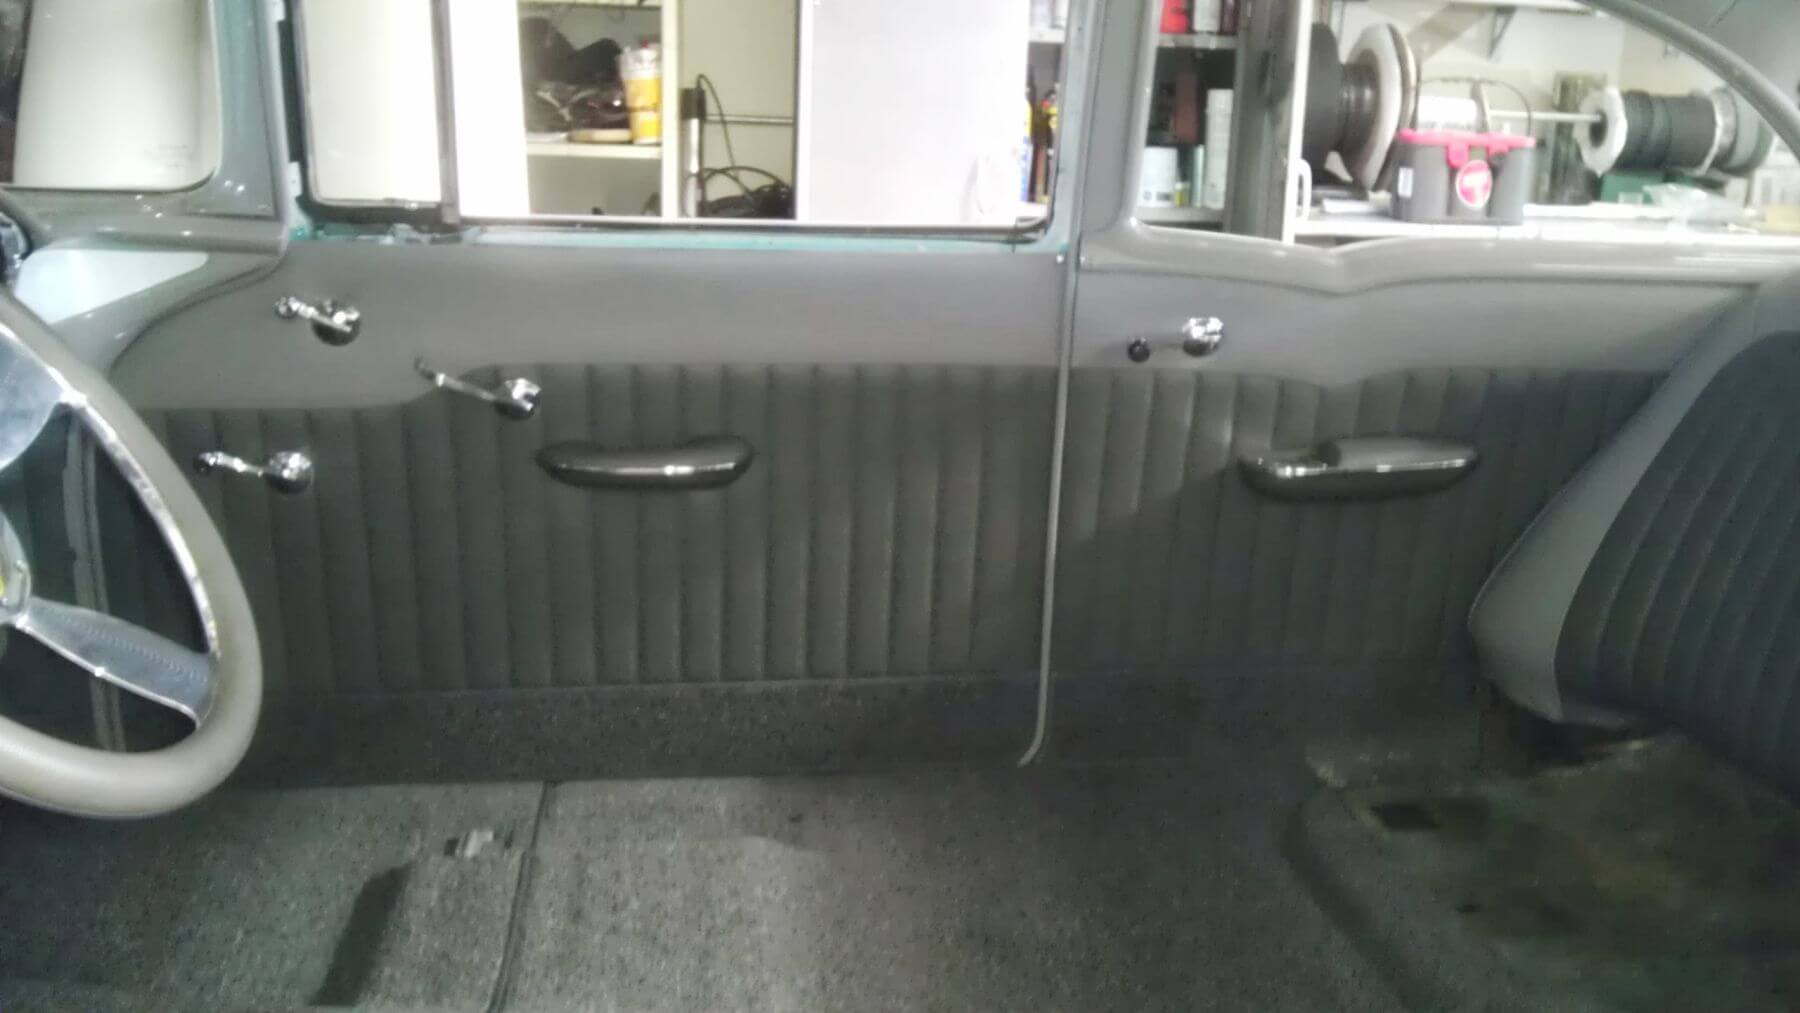 55 Chevy Bel Air Interior Frank S Hot Rods Upholstery